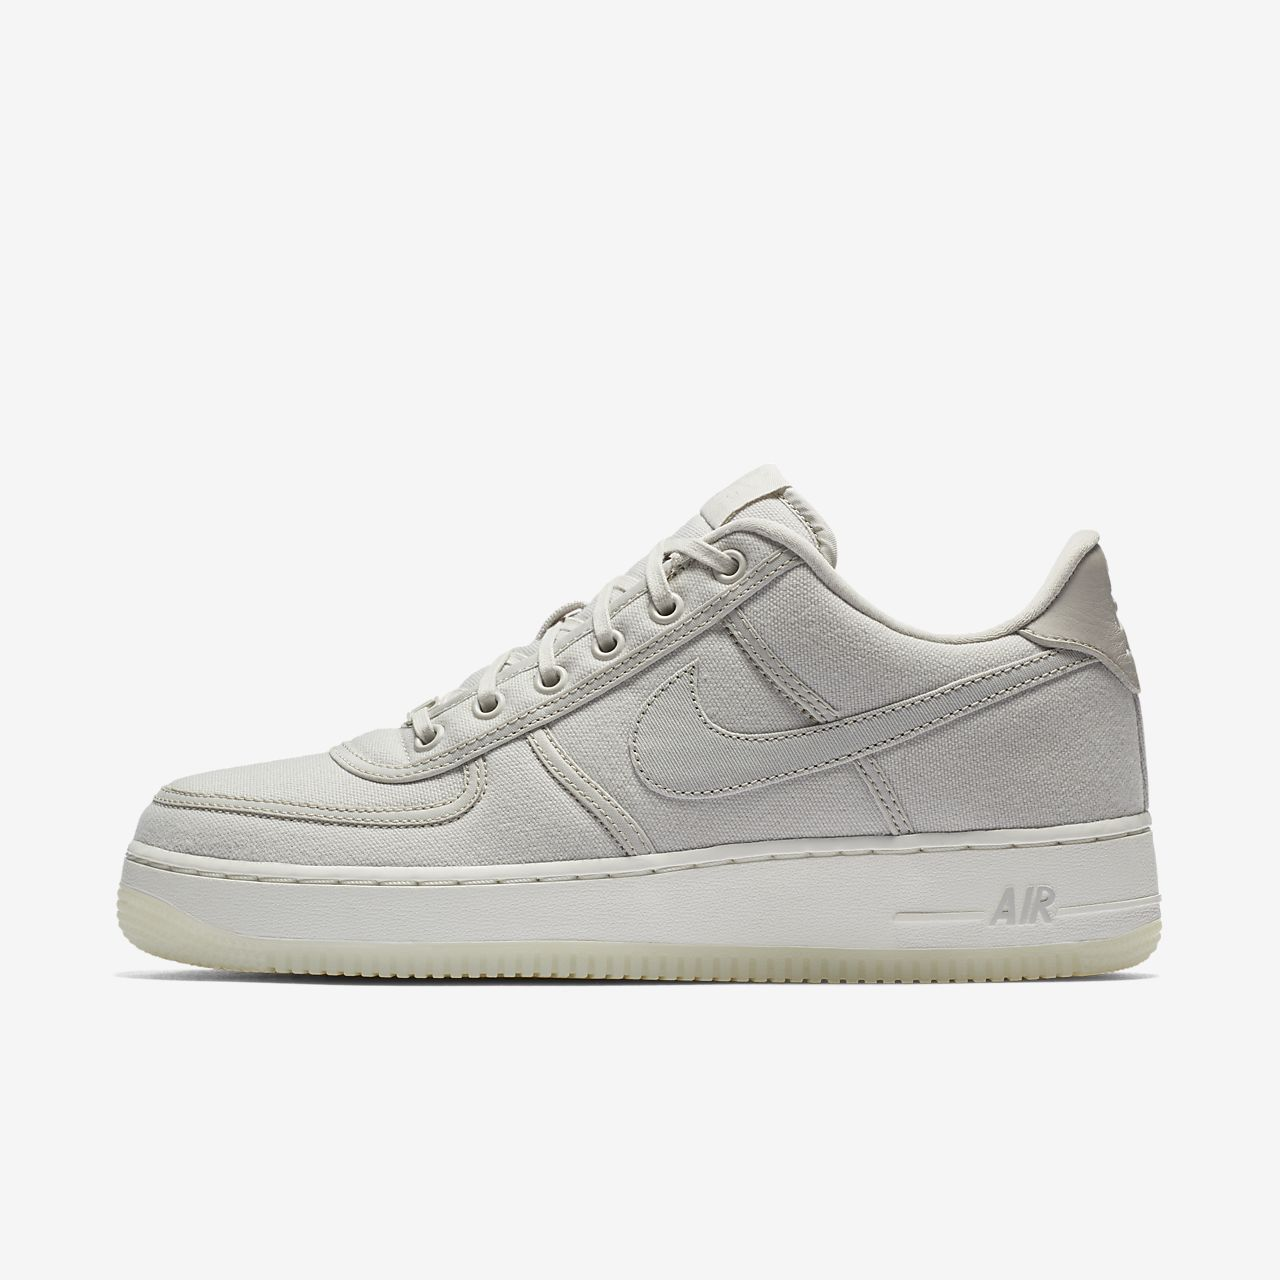 buy online c99ea b488e ... Nike Air Force 1 Low Retro QS Men s Shoe